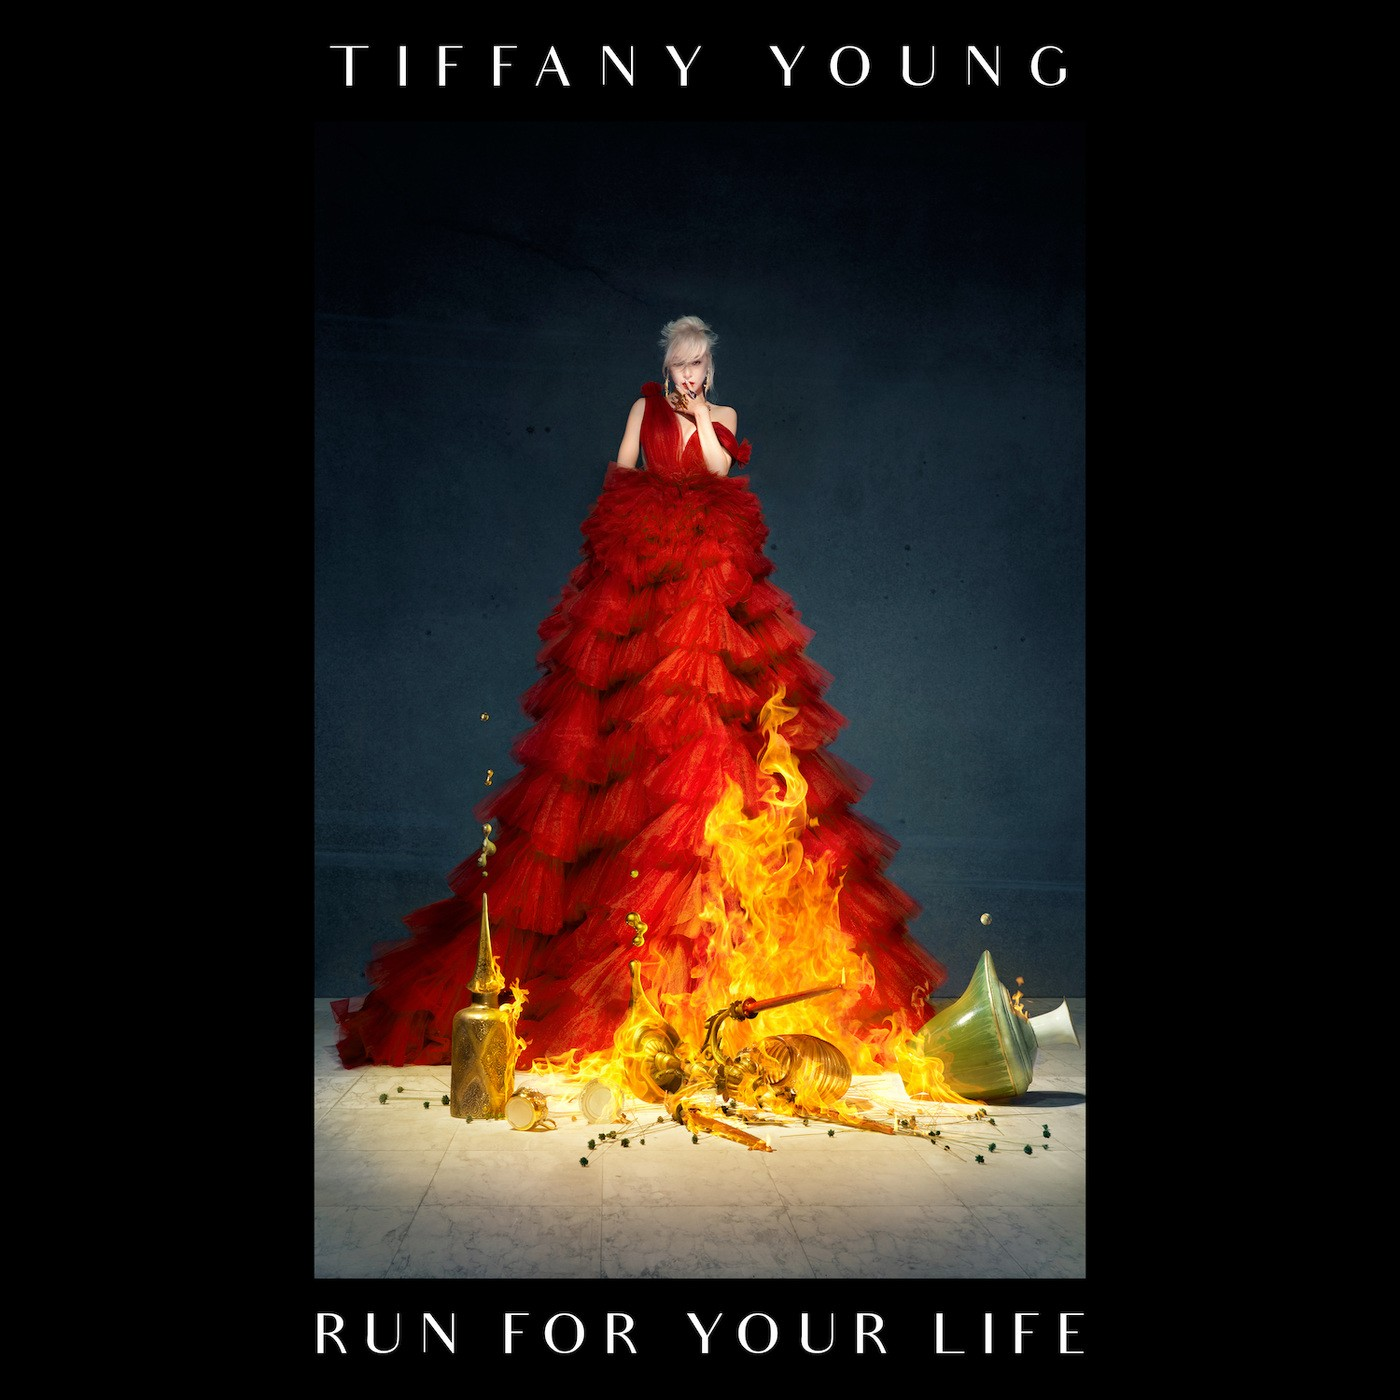 Tiffany – Run For Your Life [FLAC + MP3 320 / WEB] [2019.10.11]